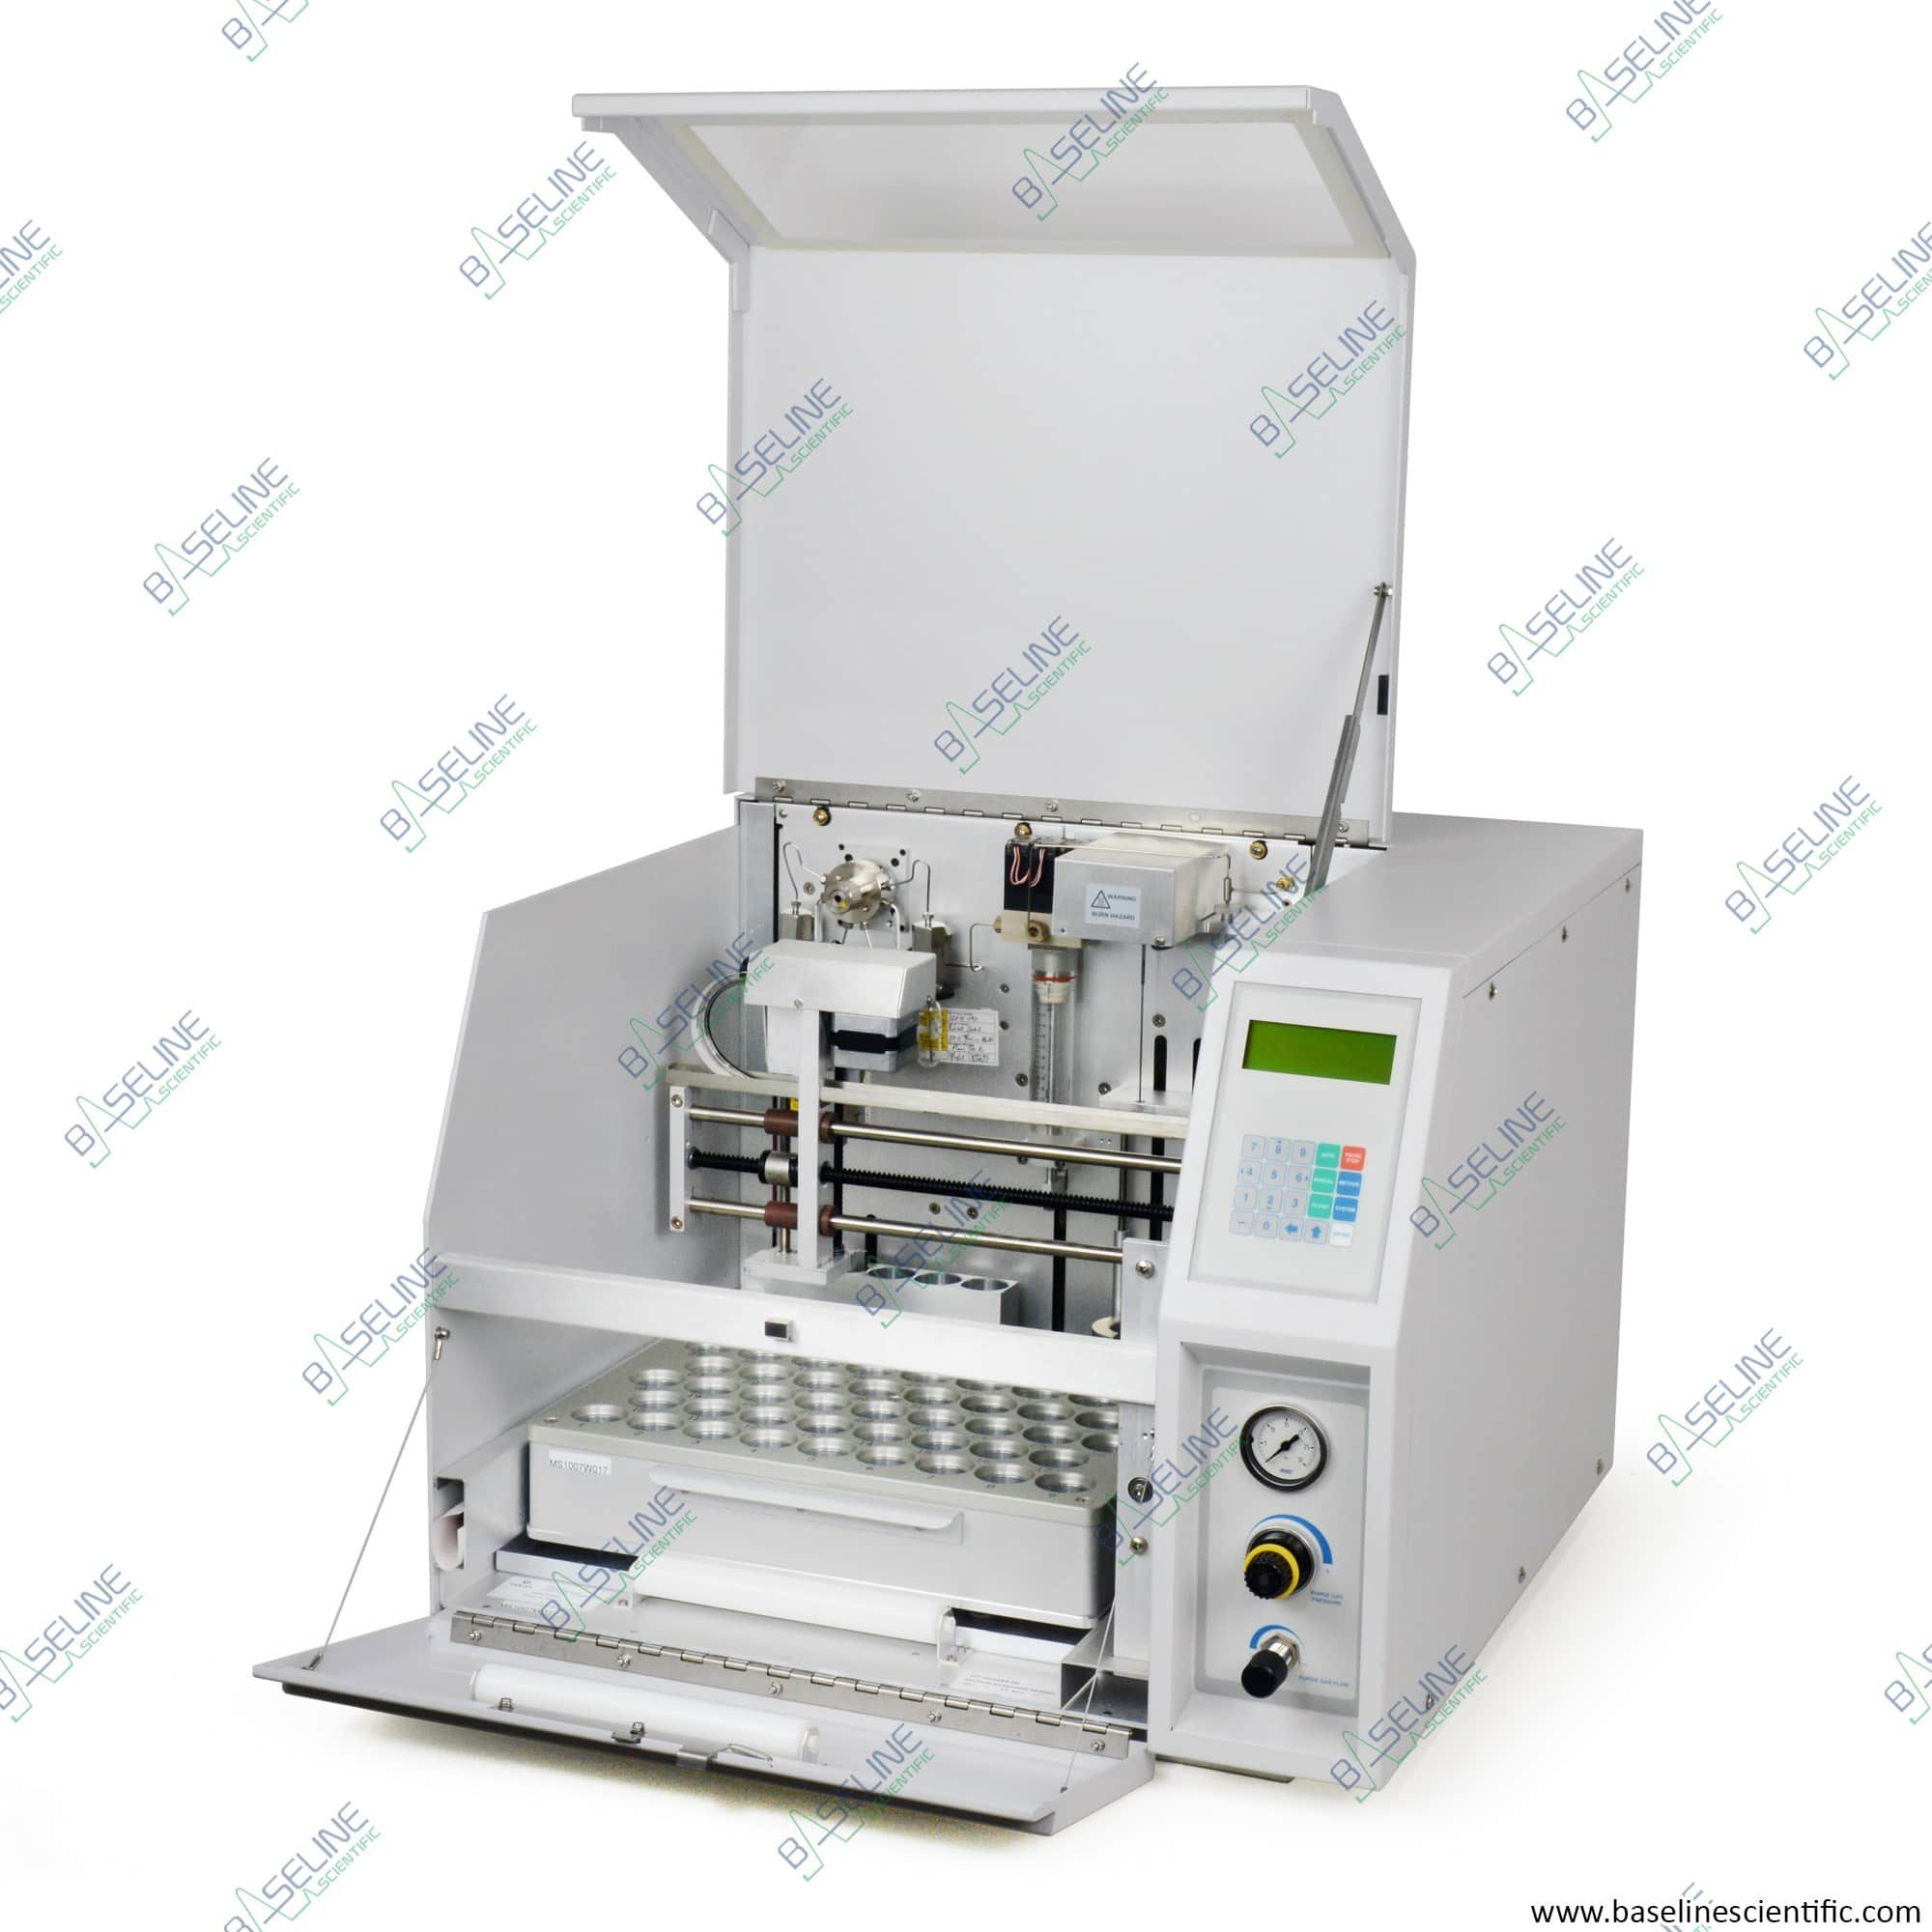 Refurbishe Varian Archon Purge and Trap AutoSampler (Water & Soil) with WARRANTY